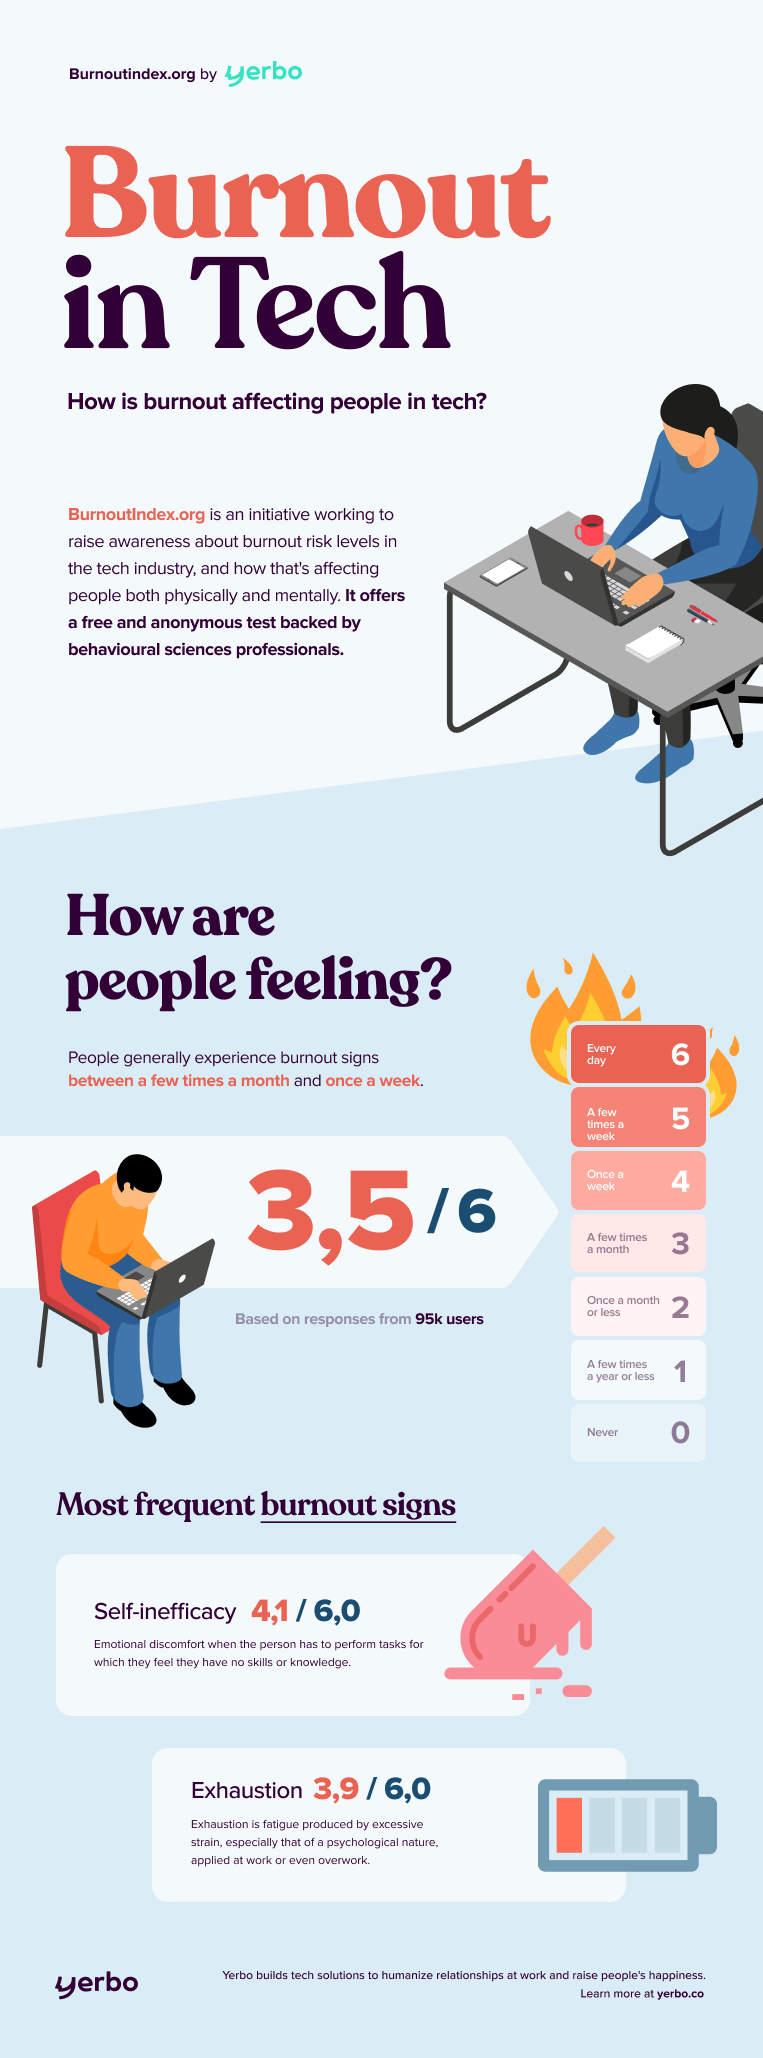 infographic with the largest burnout survey results. The average burnout risk of the sample is 3.5 out of 6.The most prominent symptom is self-inefficacy.